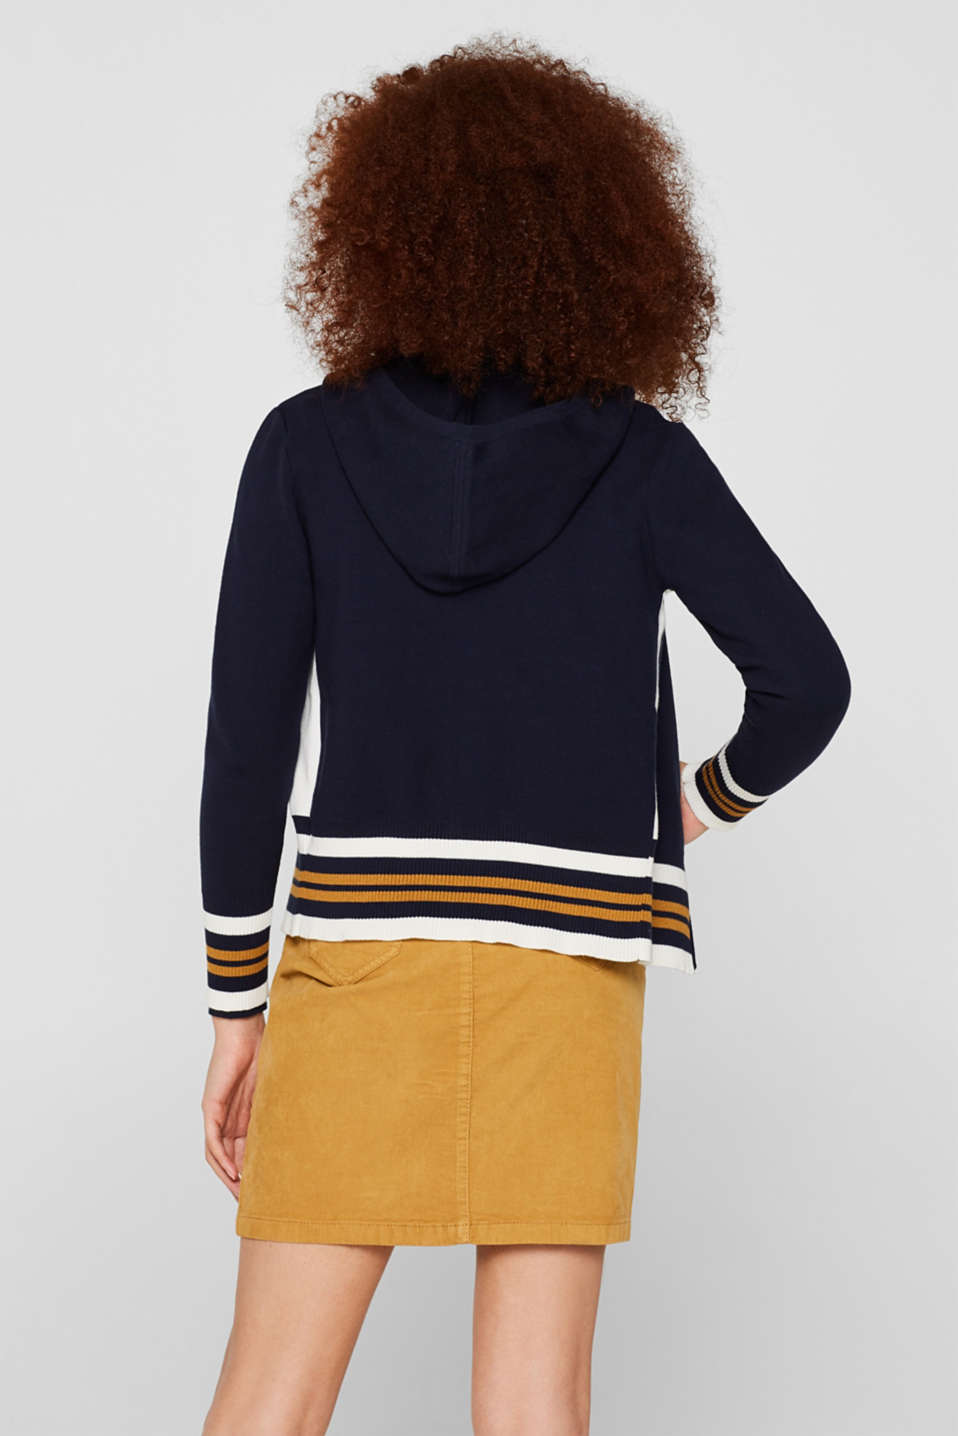 Knit cardigan with a hood and stripes, NAVY 3, detail image number 3